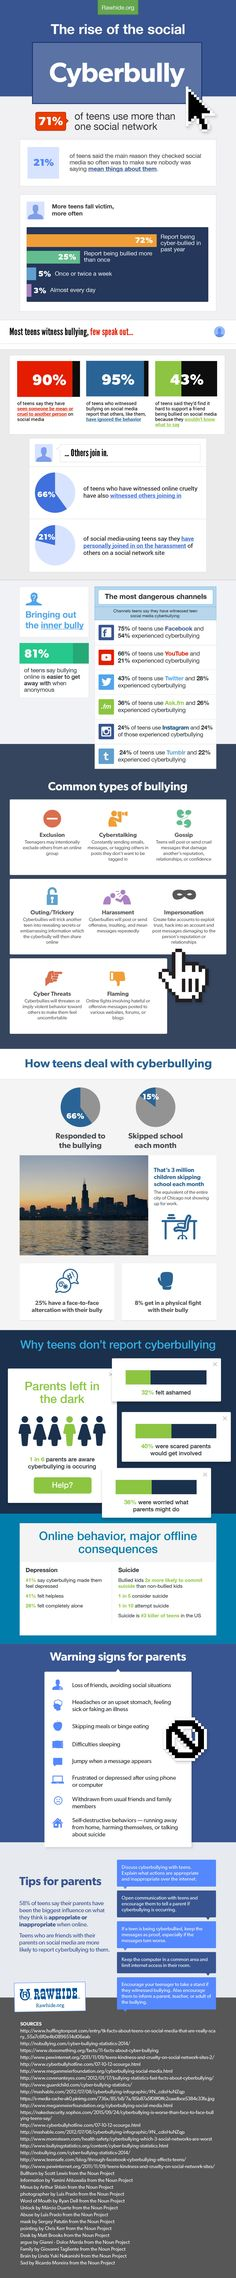 The Rise of the Social Cyberbully #infographic #Cyberbullying #Internet